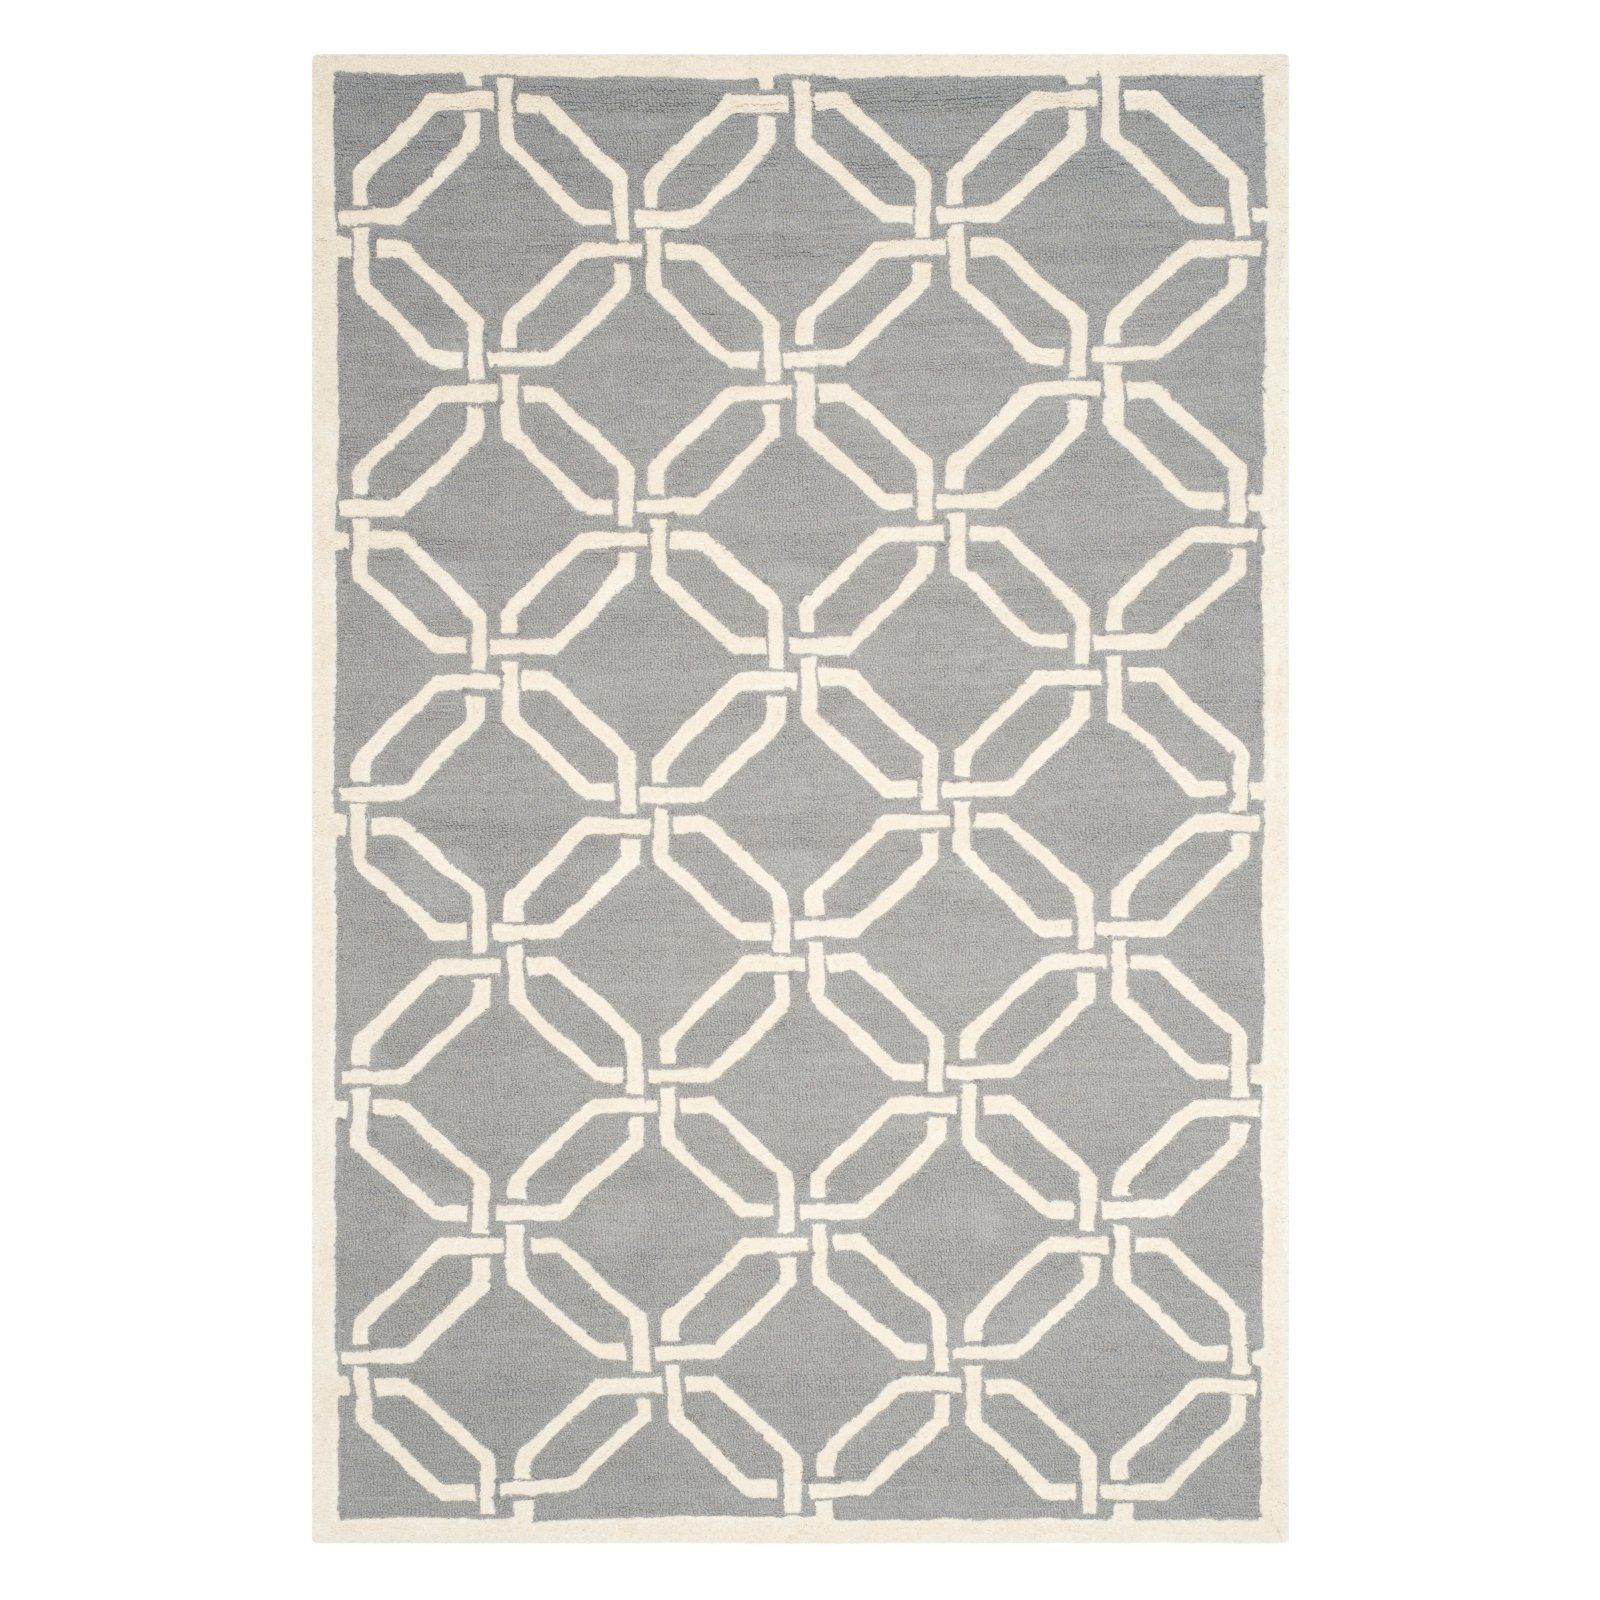 Safavieh Cambridge Cam311 Indoor Area Rug Dark Gray Ivory Wool